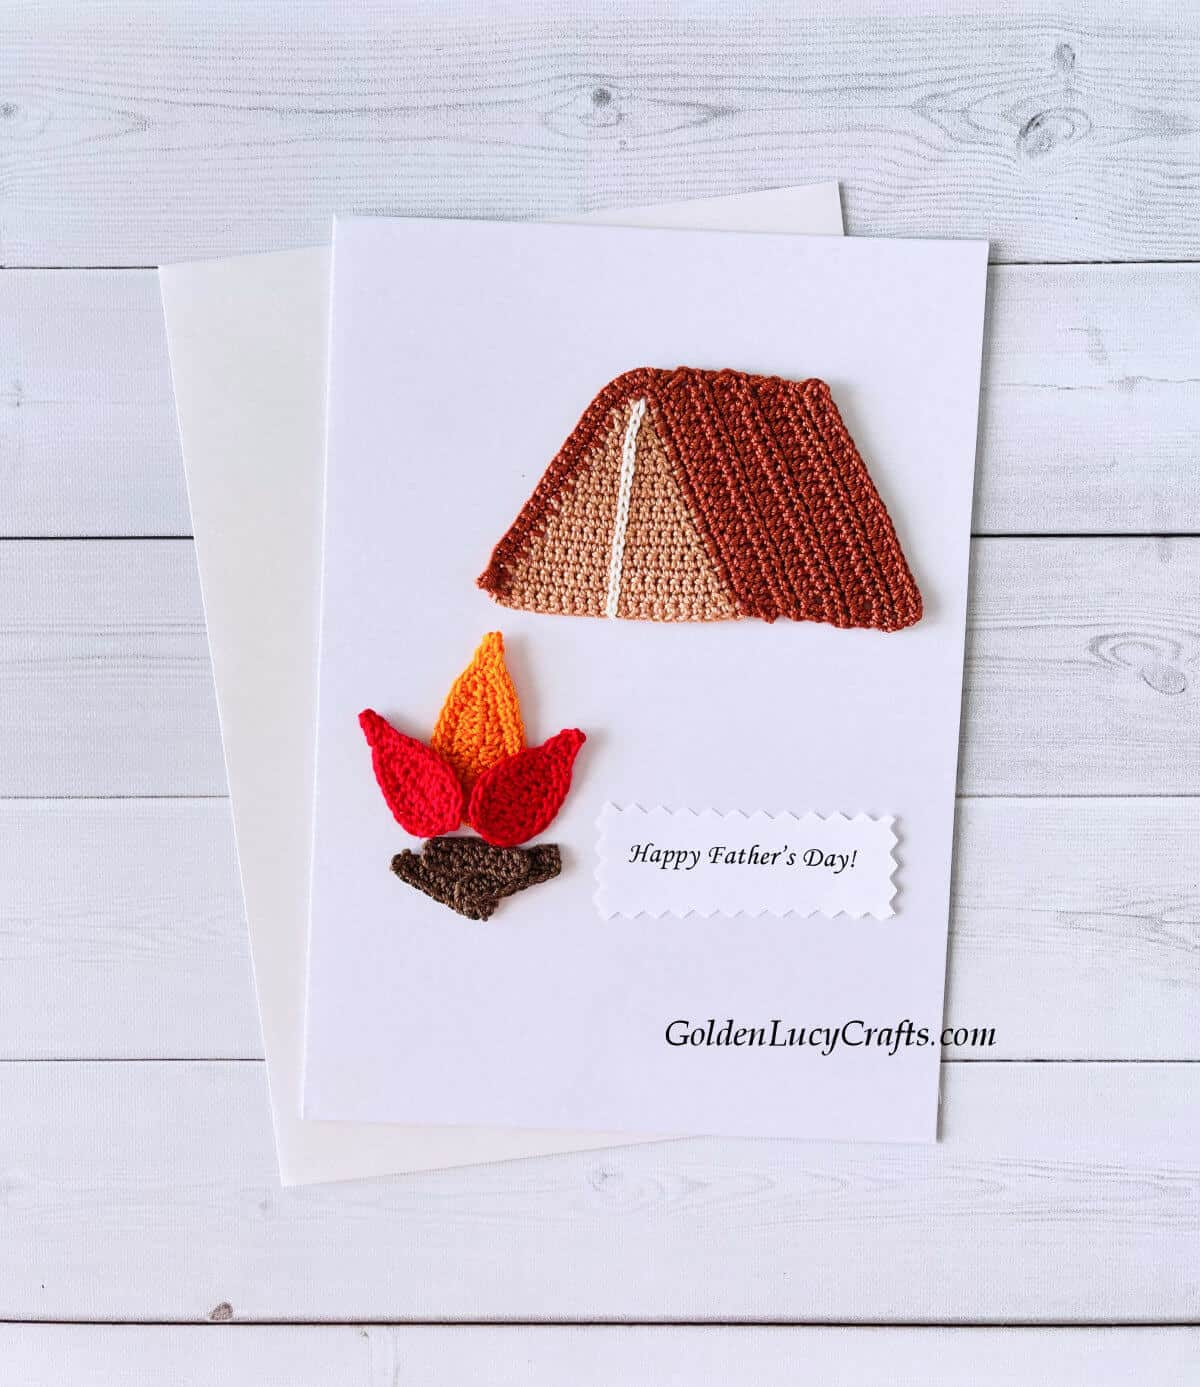 """Crochet camping applique on a white card with the text """"Happy Father's Day!"""""""